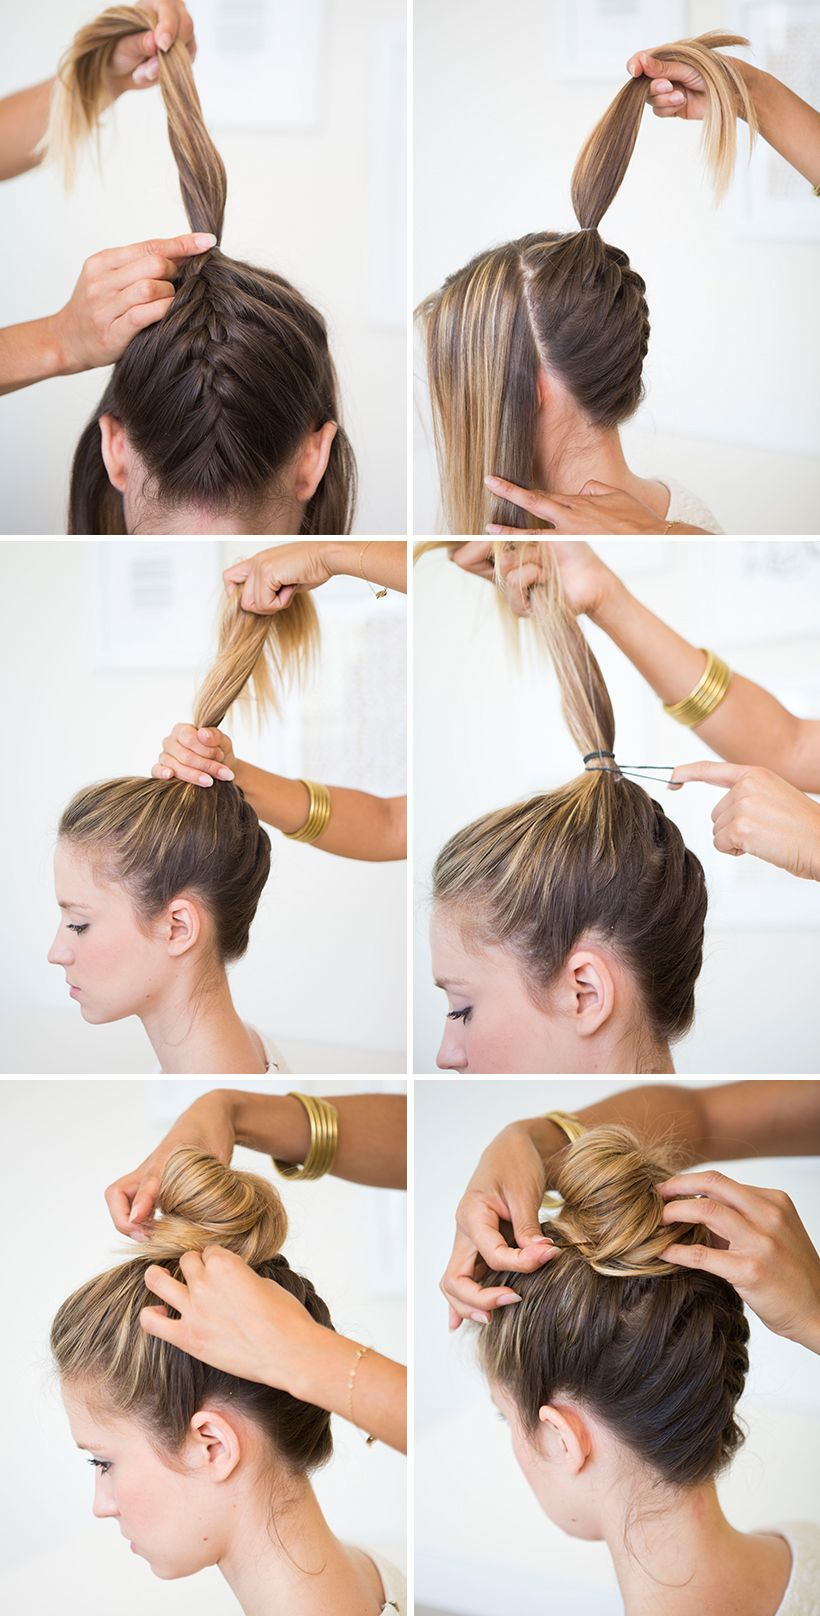 Upside down braided bun hairstyles and colors pinterest braids